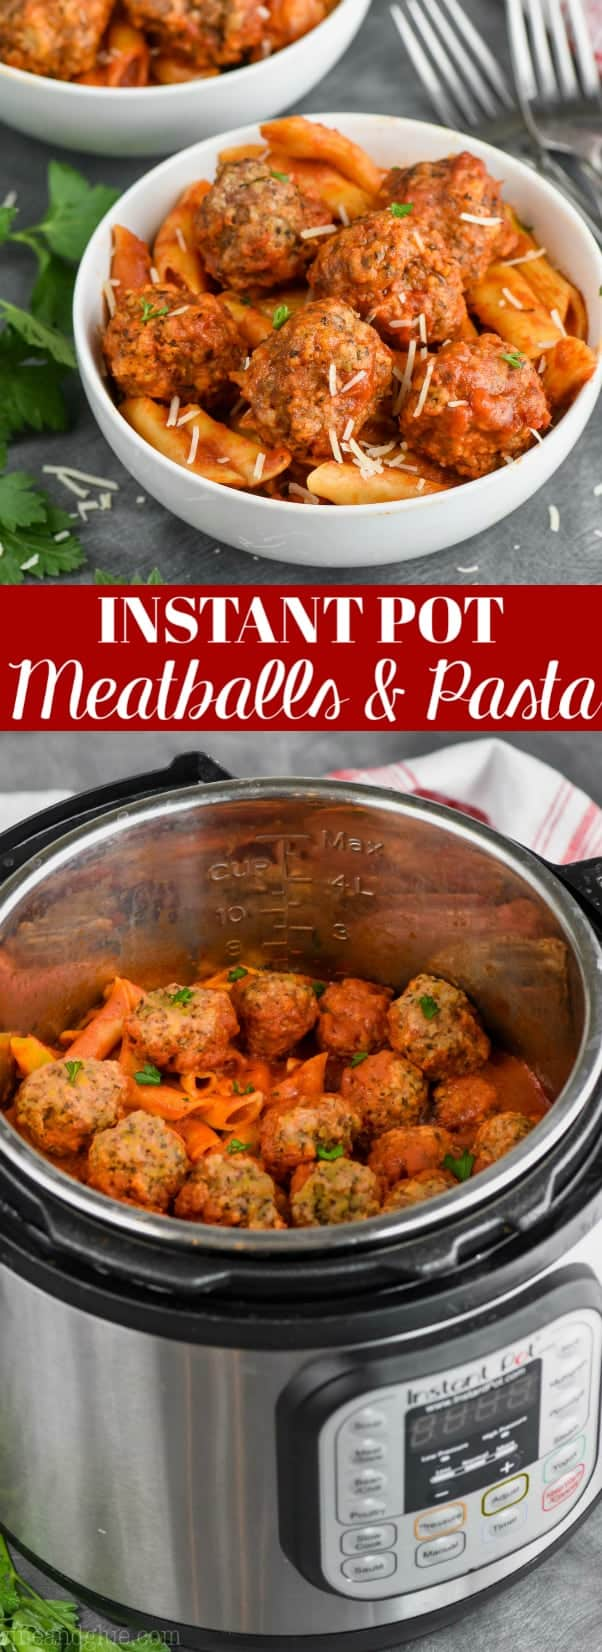 bowl of instant pot meatballs and pasta